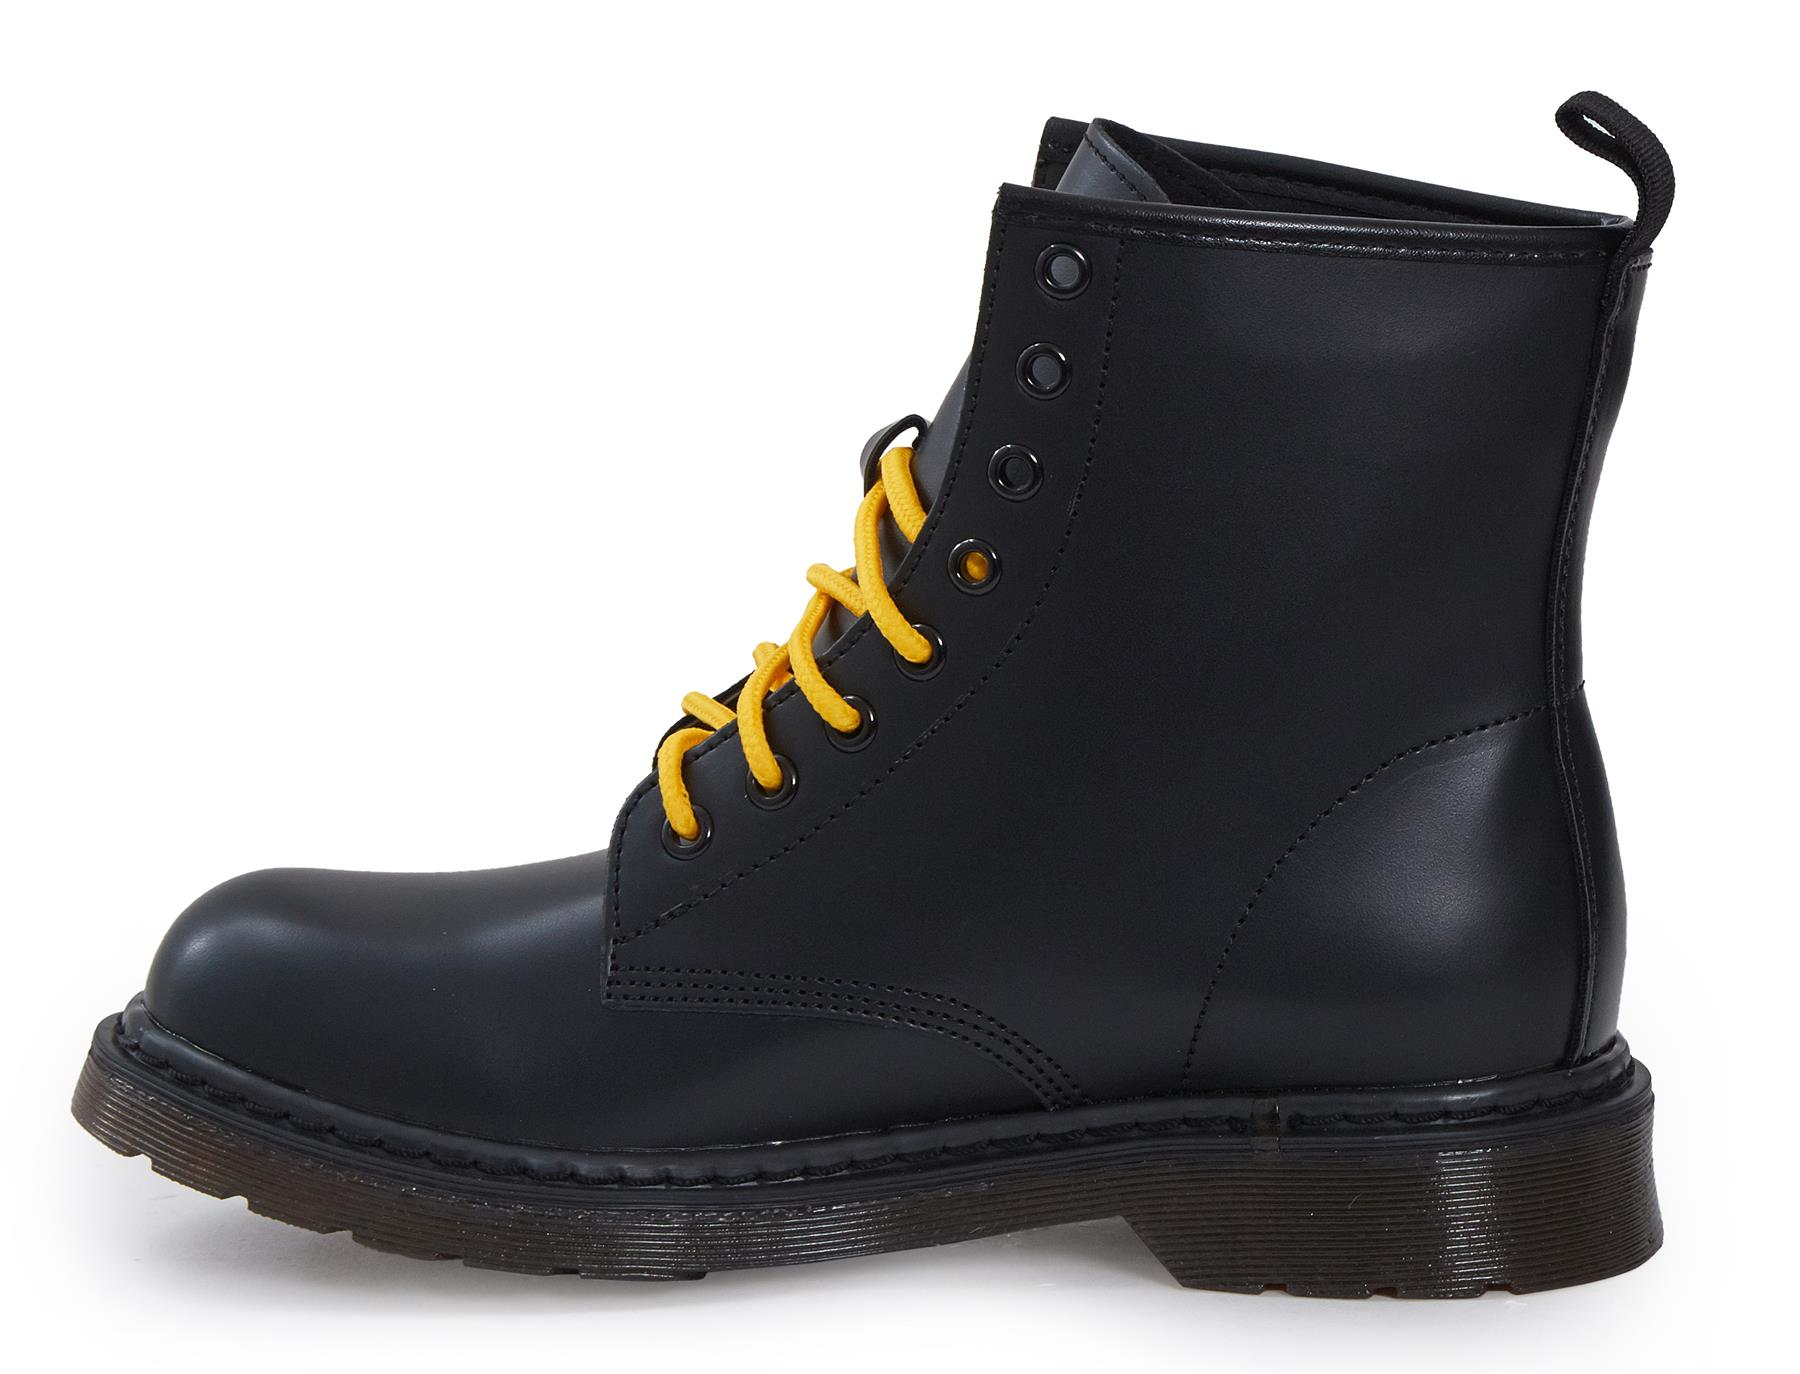 Shelikes-Womens-Ankle-Boots-Vintage-Combat-Army-Flat-Lace-Up-Work-Military-Biker thumbnail 5